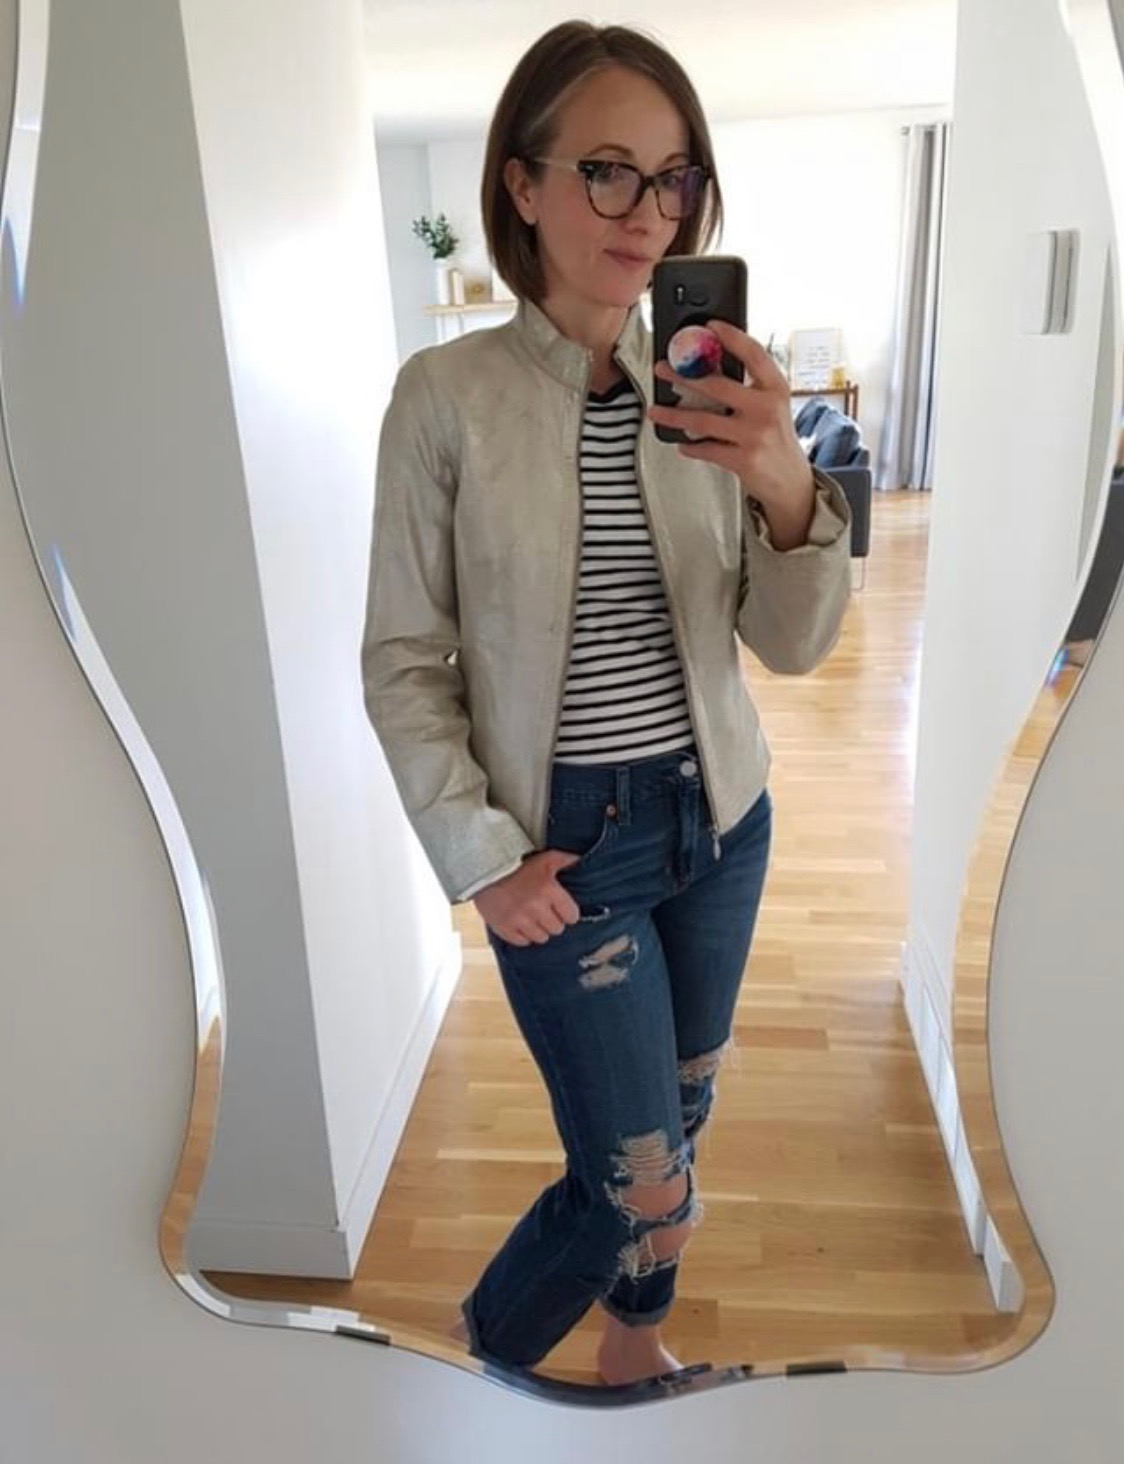 consignment, thrift shopping, thrifting, value village, second hand, clothes, looking good, cute outfit, over 40